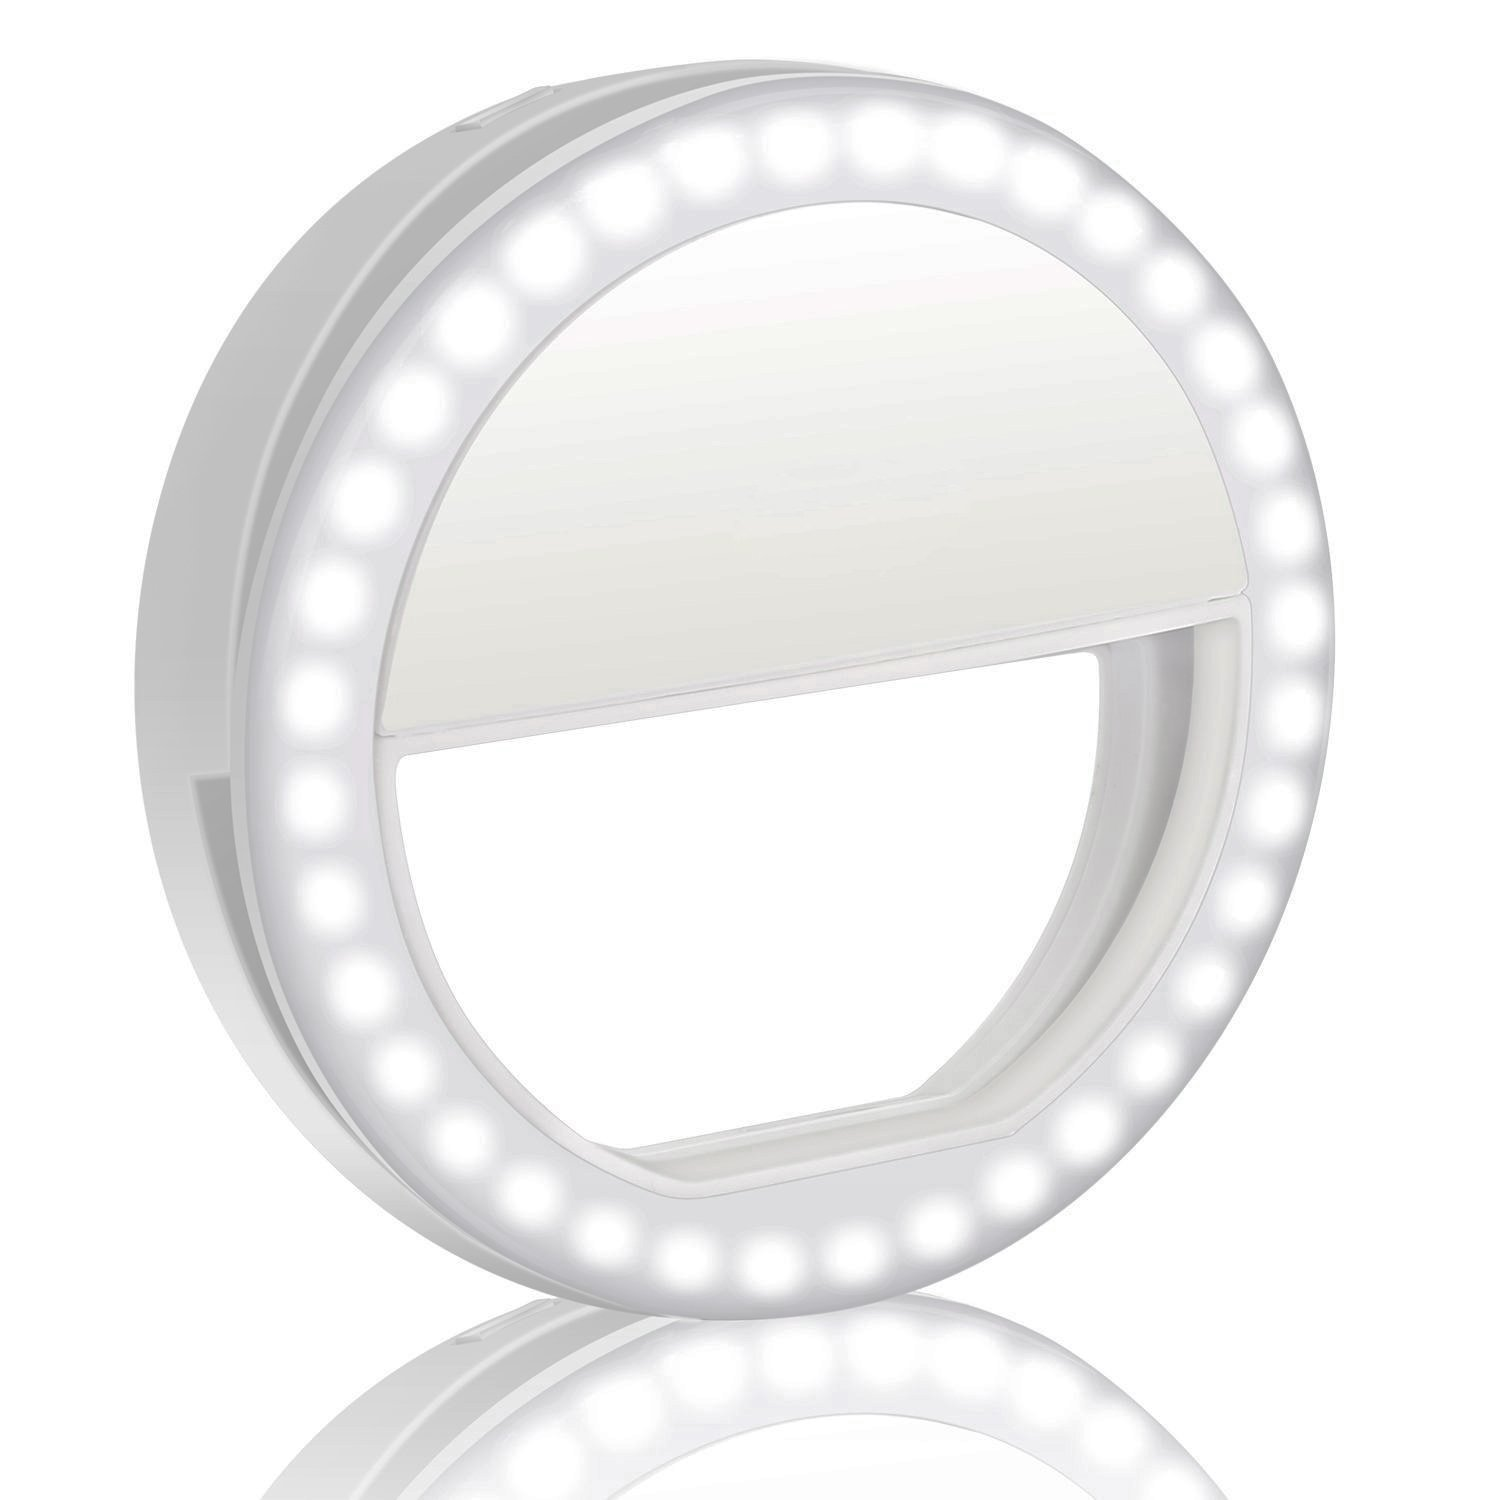 Selfie Light,WaterLuu Selfie Ring Light for Camera [Rechargable Battery] Selfie LED Camera Light [36 LED] for iPhone iPad Sumsung Galaxy Photography Phones (White)